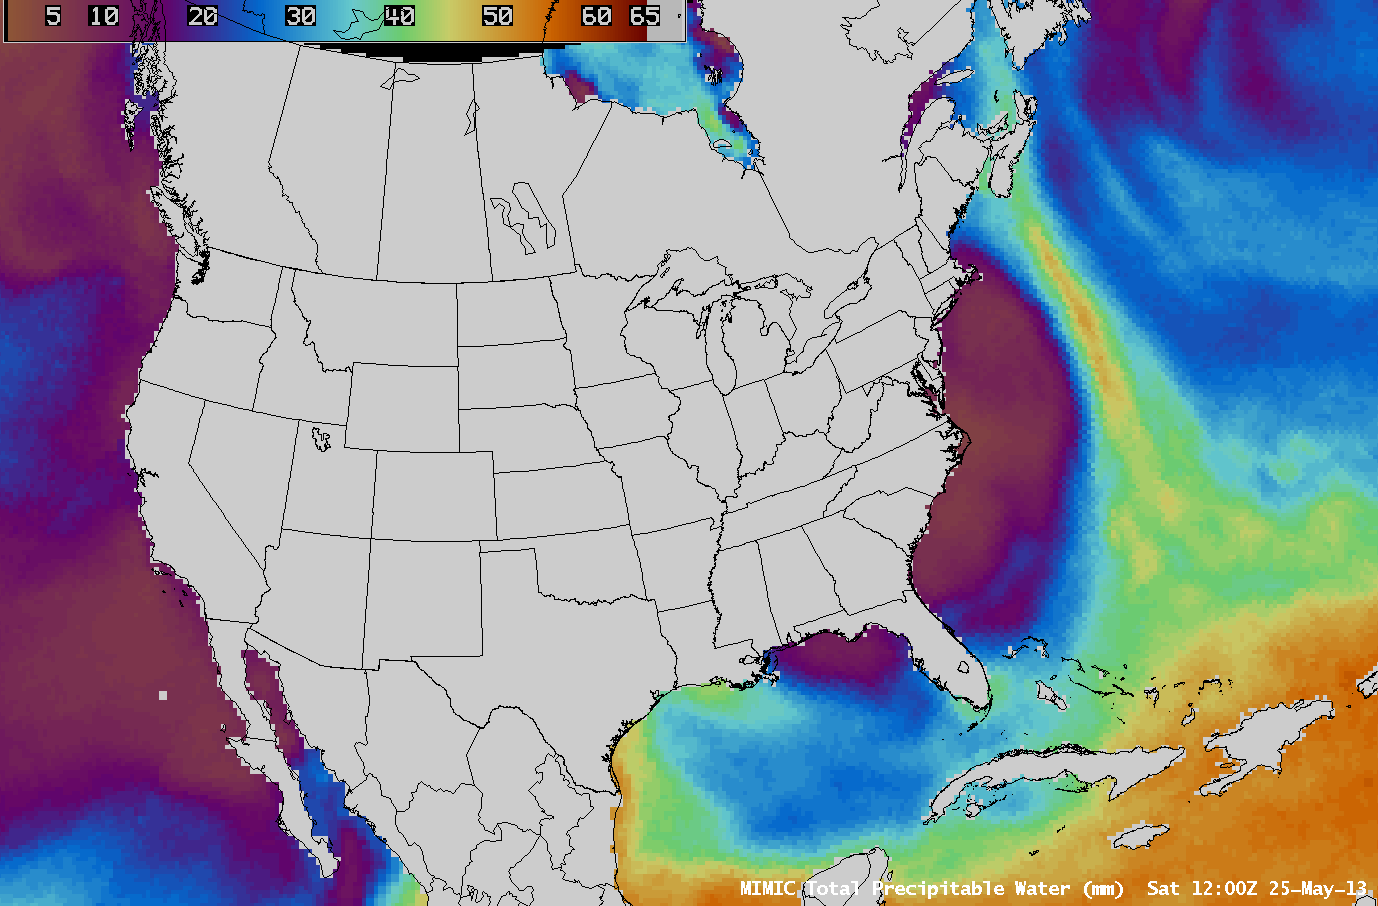 MIMIC Total Precipitable Water product (click image to play animation)